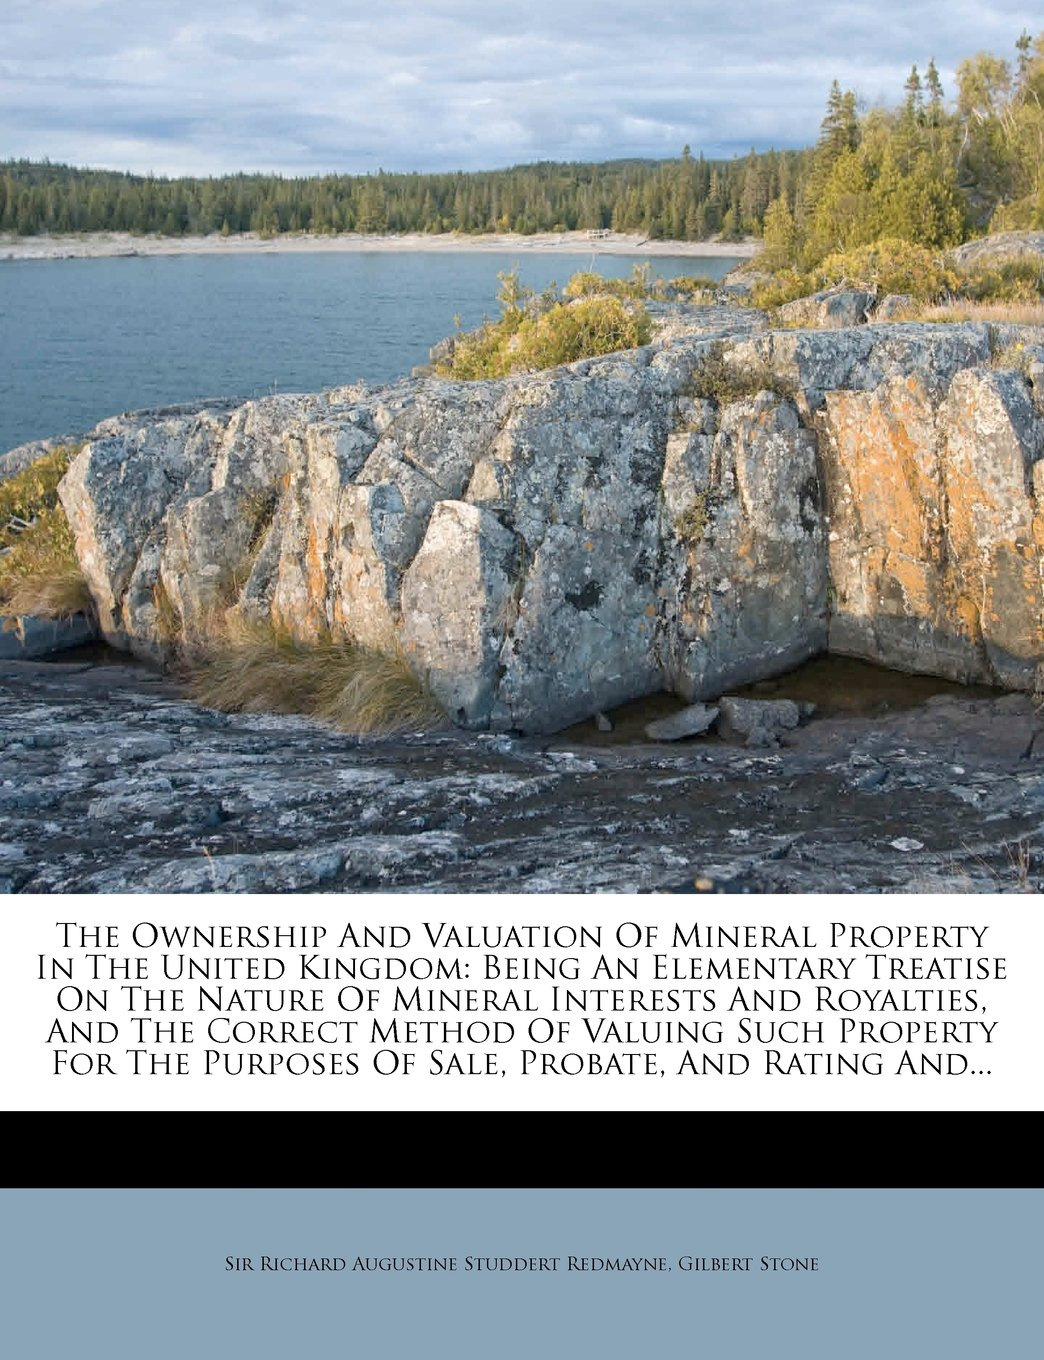 The Ownership And Valuation Of Mineral Property In The United Kingdom: Being An Elementary Treatise On The Nature Of Mineral Interests And Royalties, ... Purposes Of Sale, Probate, And Rating And... PDF